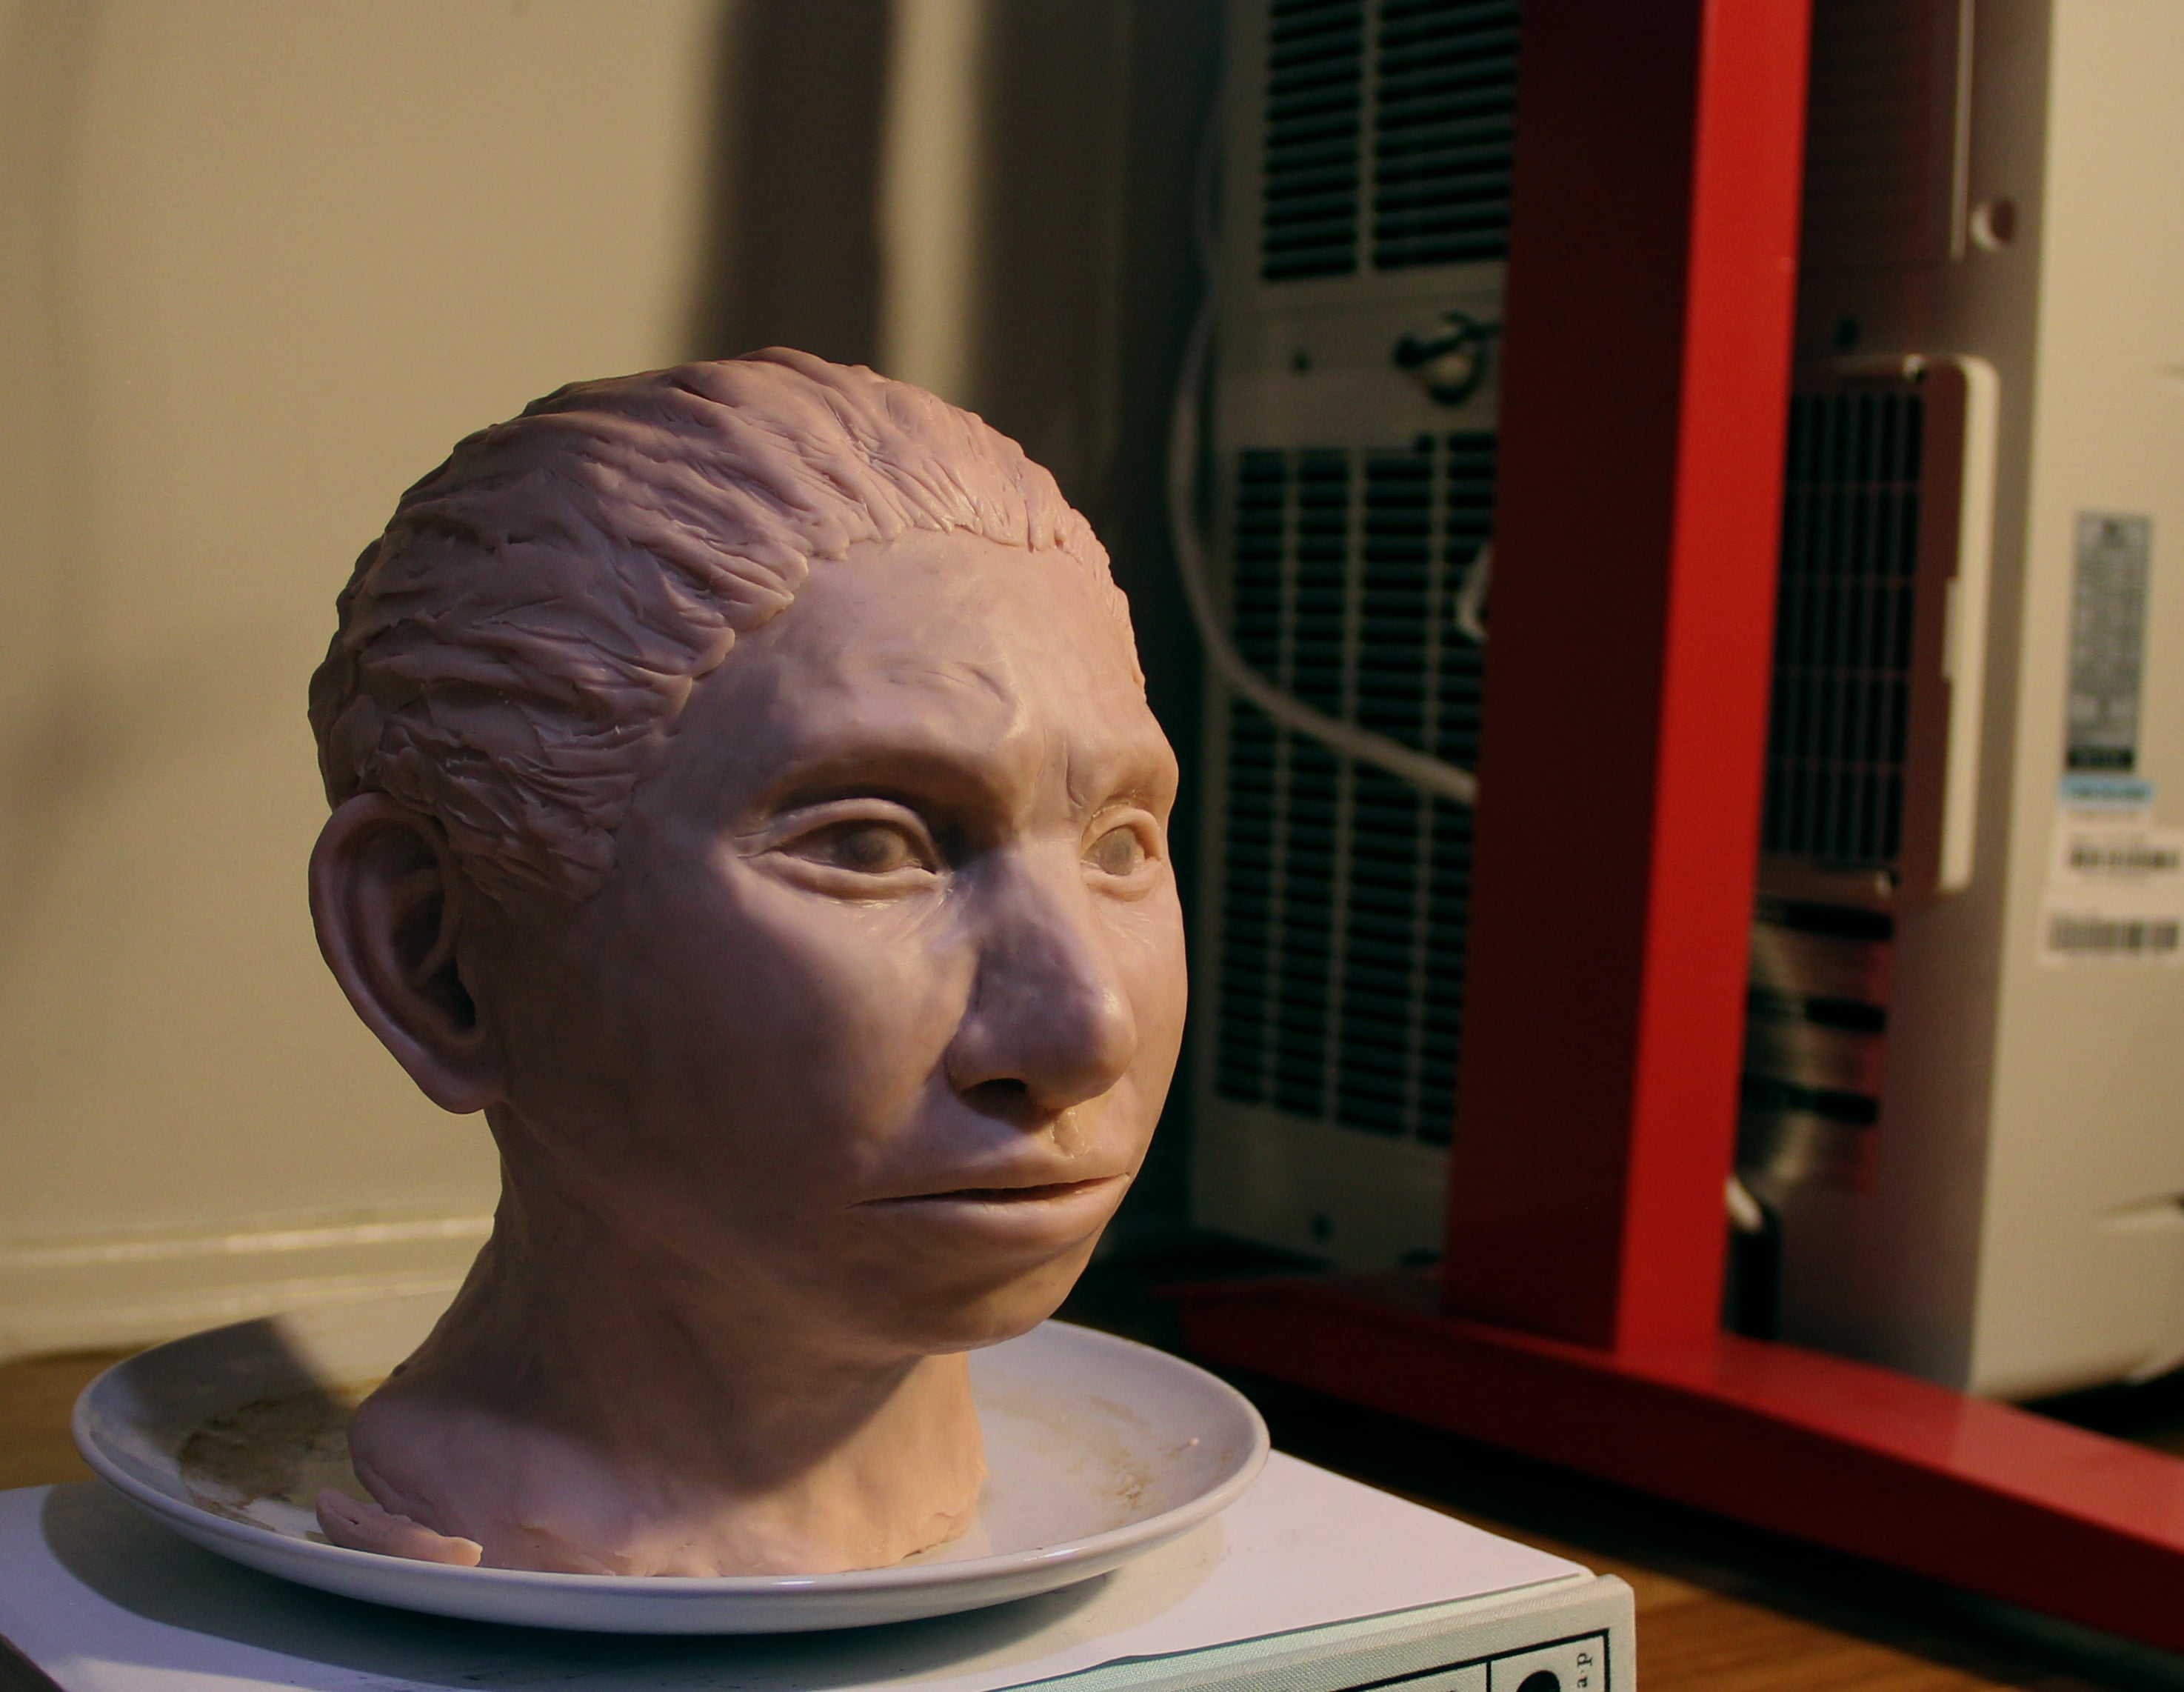 Israeli Facial Reconstruction Of Ancient Human Up For 'Breakthrough Of The Year' Science Award